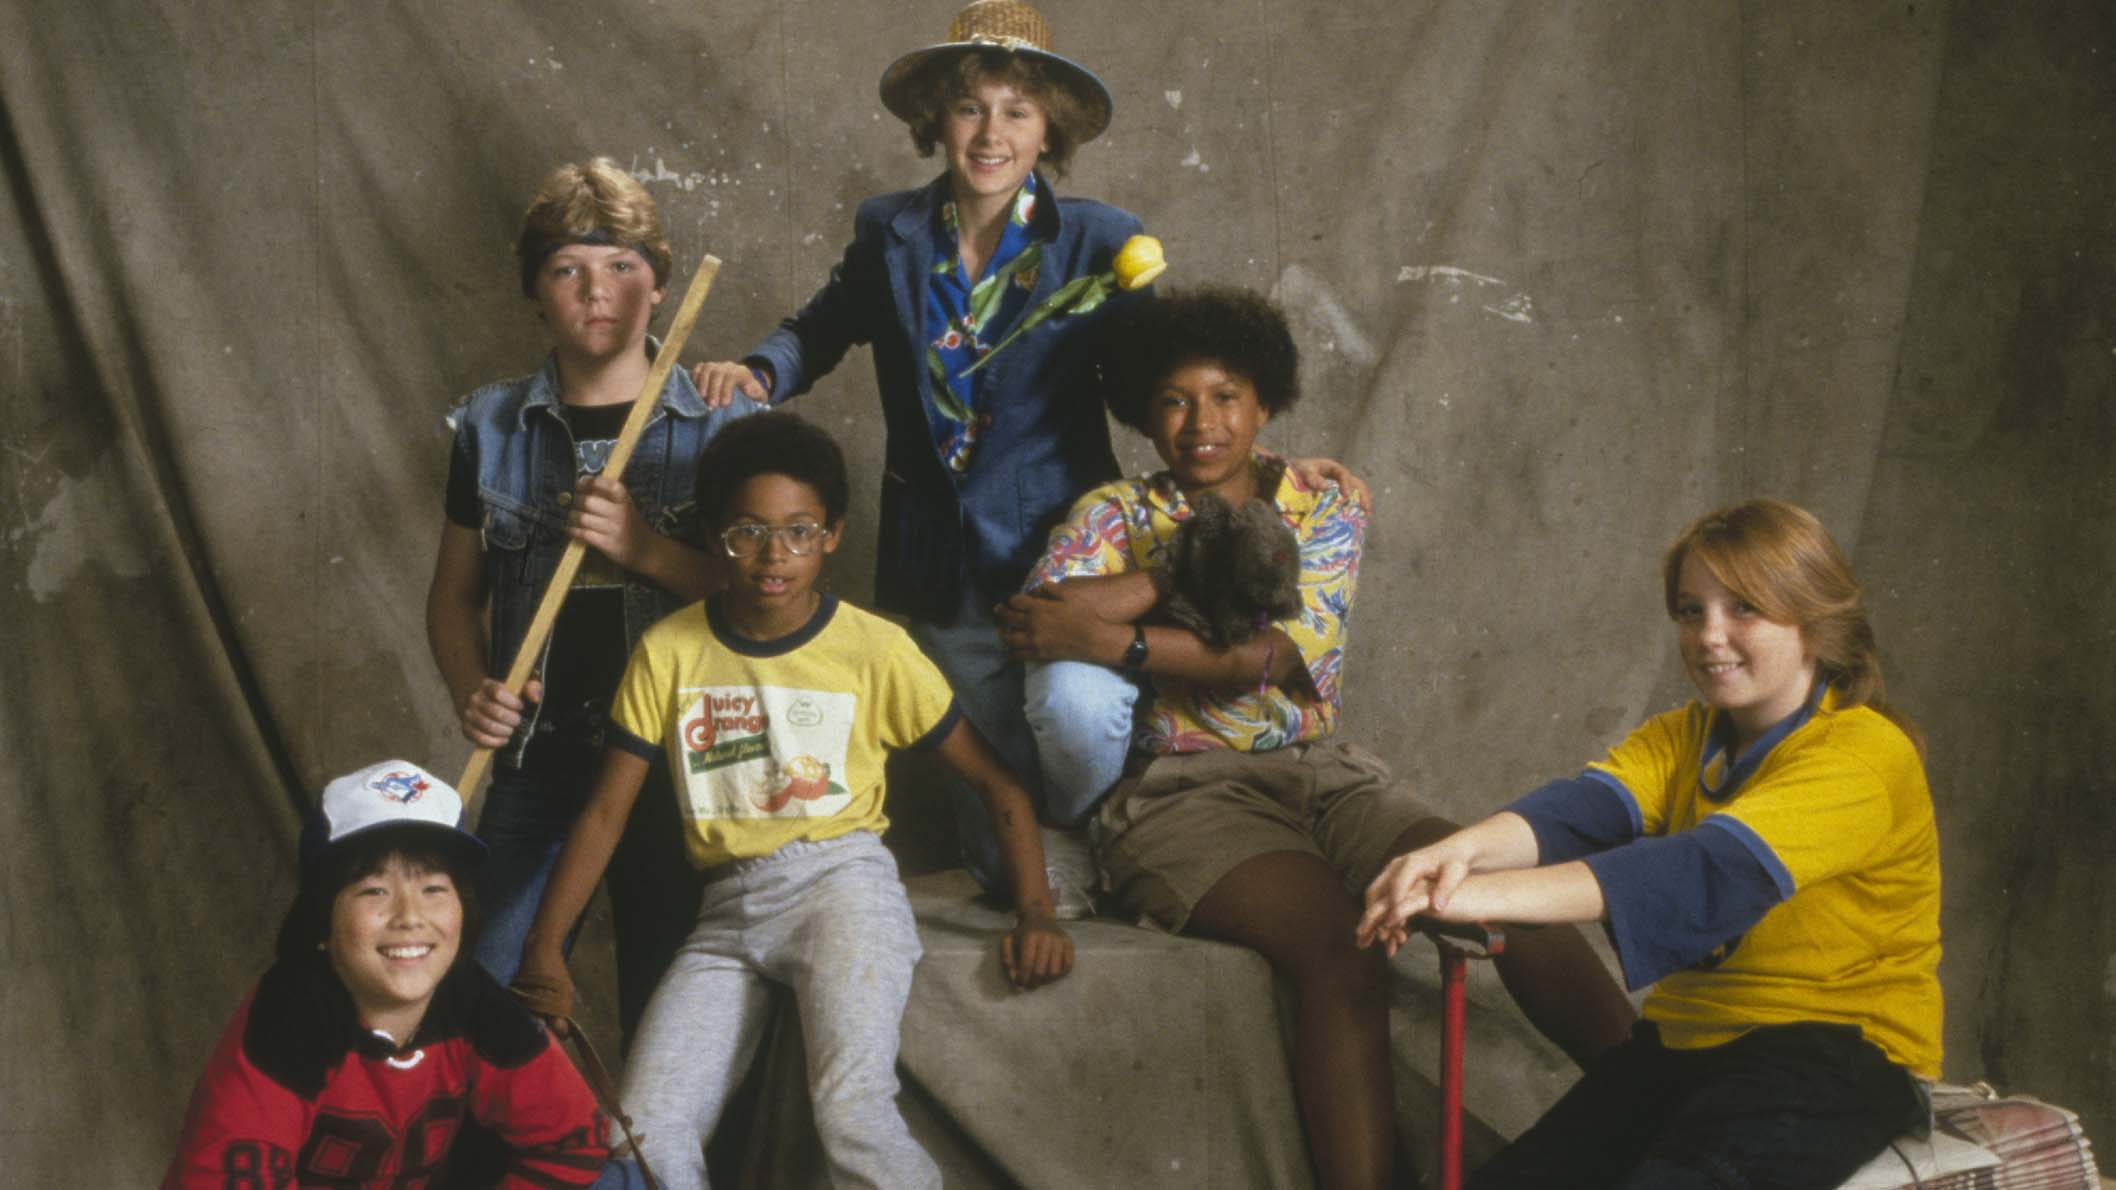 The Kids of Degrassi St.